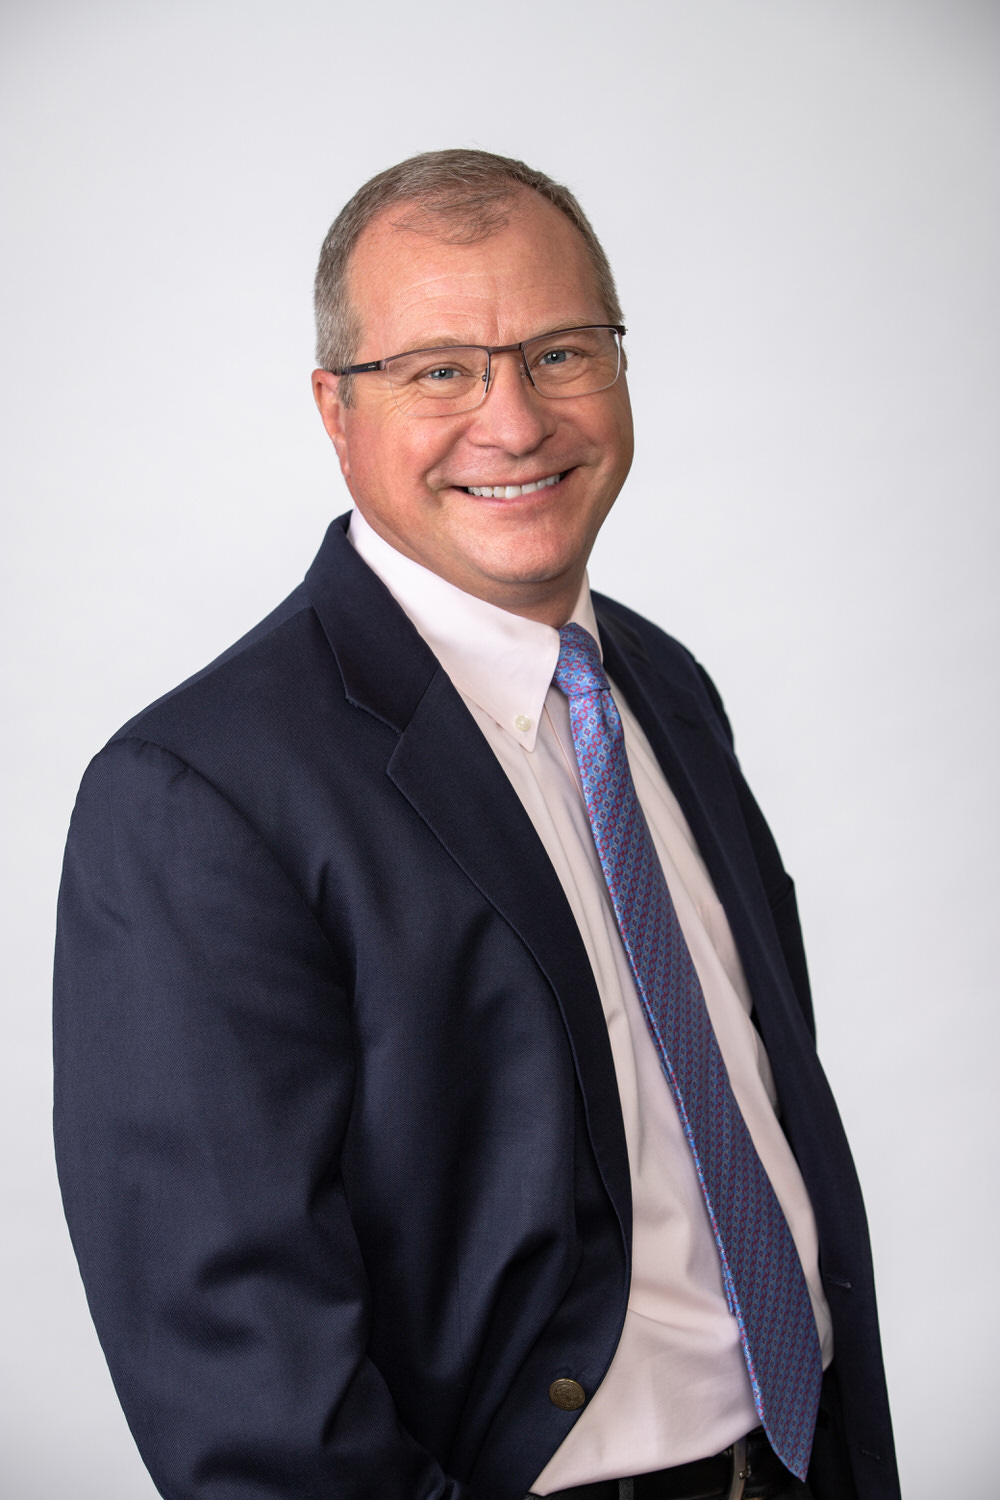 Jeff George, Vice President, Executive Search of Marymont Group